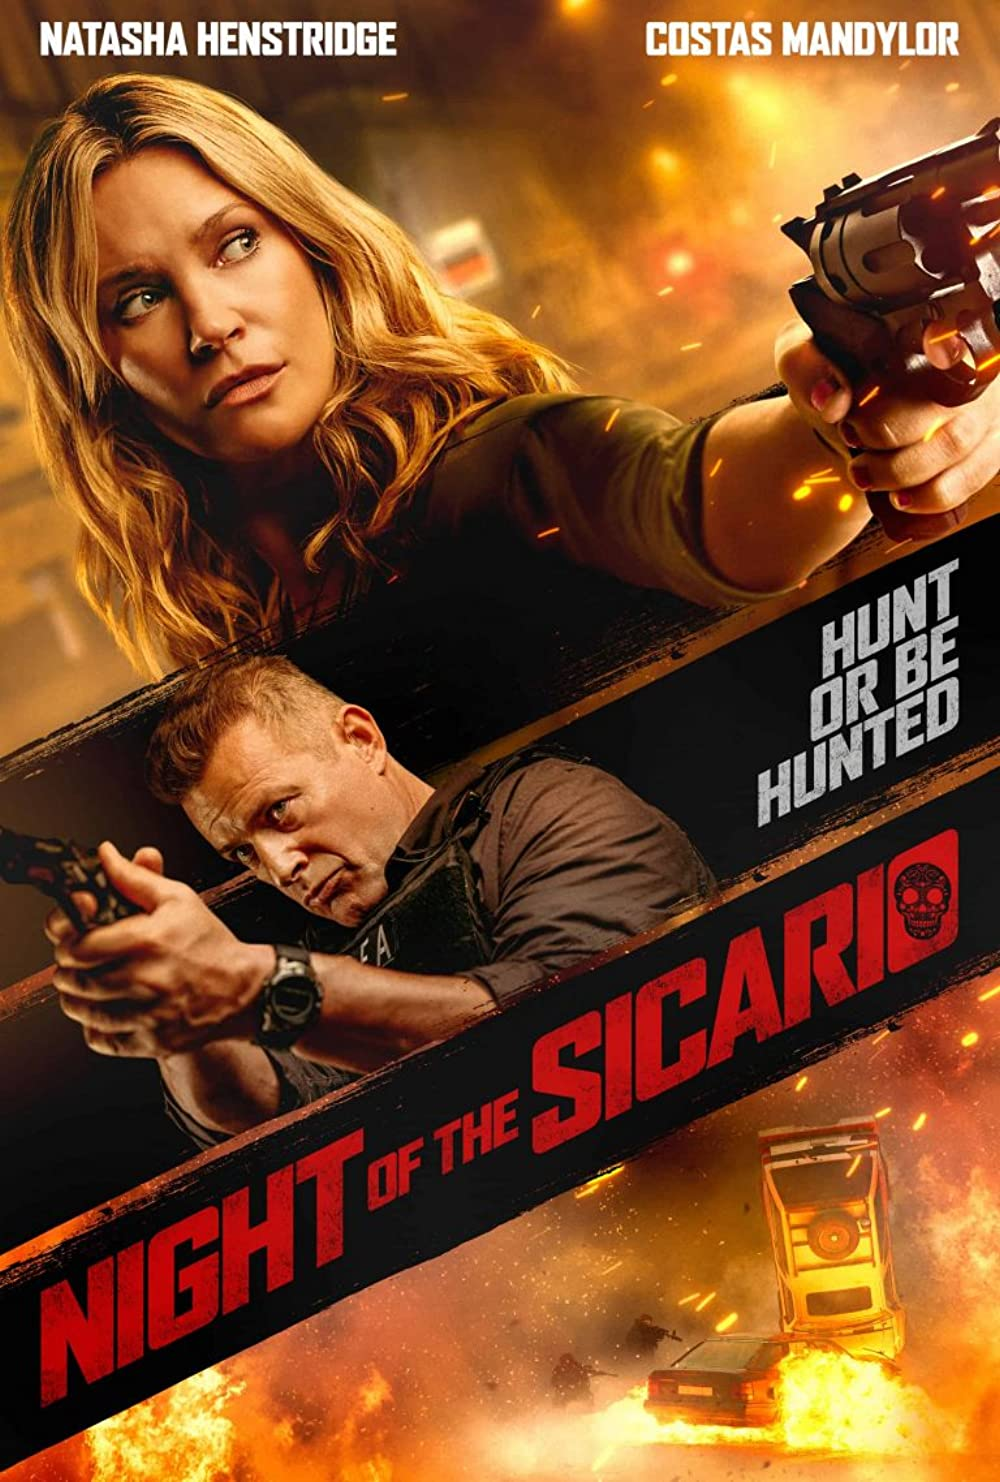 Watch Night of the Sicario Online